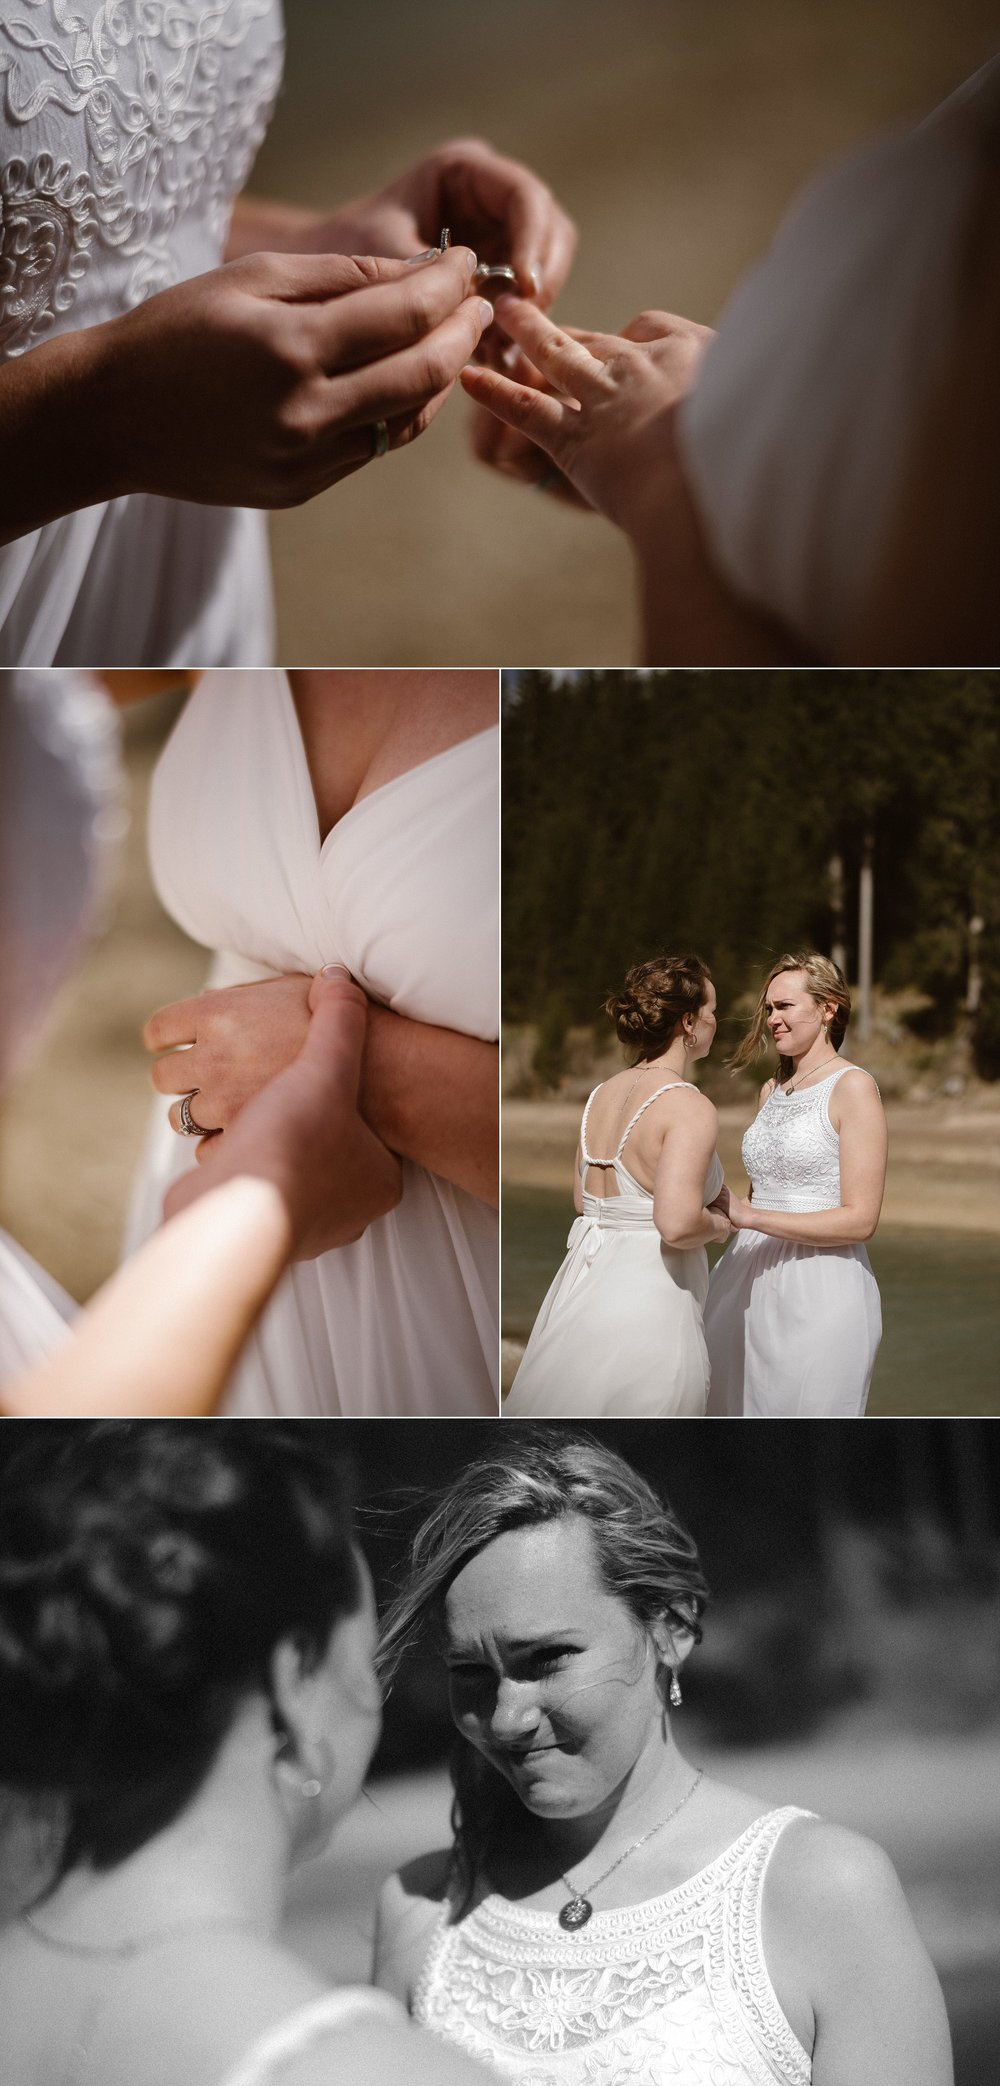 Holding tightly to each other and making promises for their future while the wind blew next to Lake Braise at the foothills of the Dolomite mountains where these gorgeous brides eloped. Adventurous wedding photographer Maddie Mae captured each tender moment of this intimate Italian elopement.